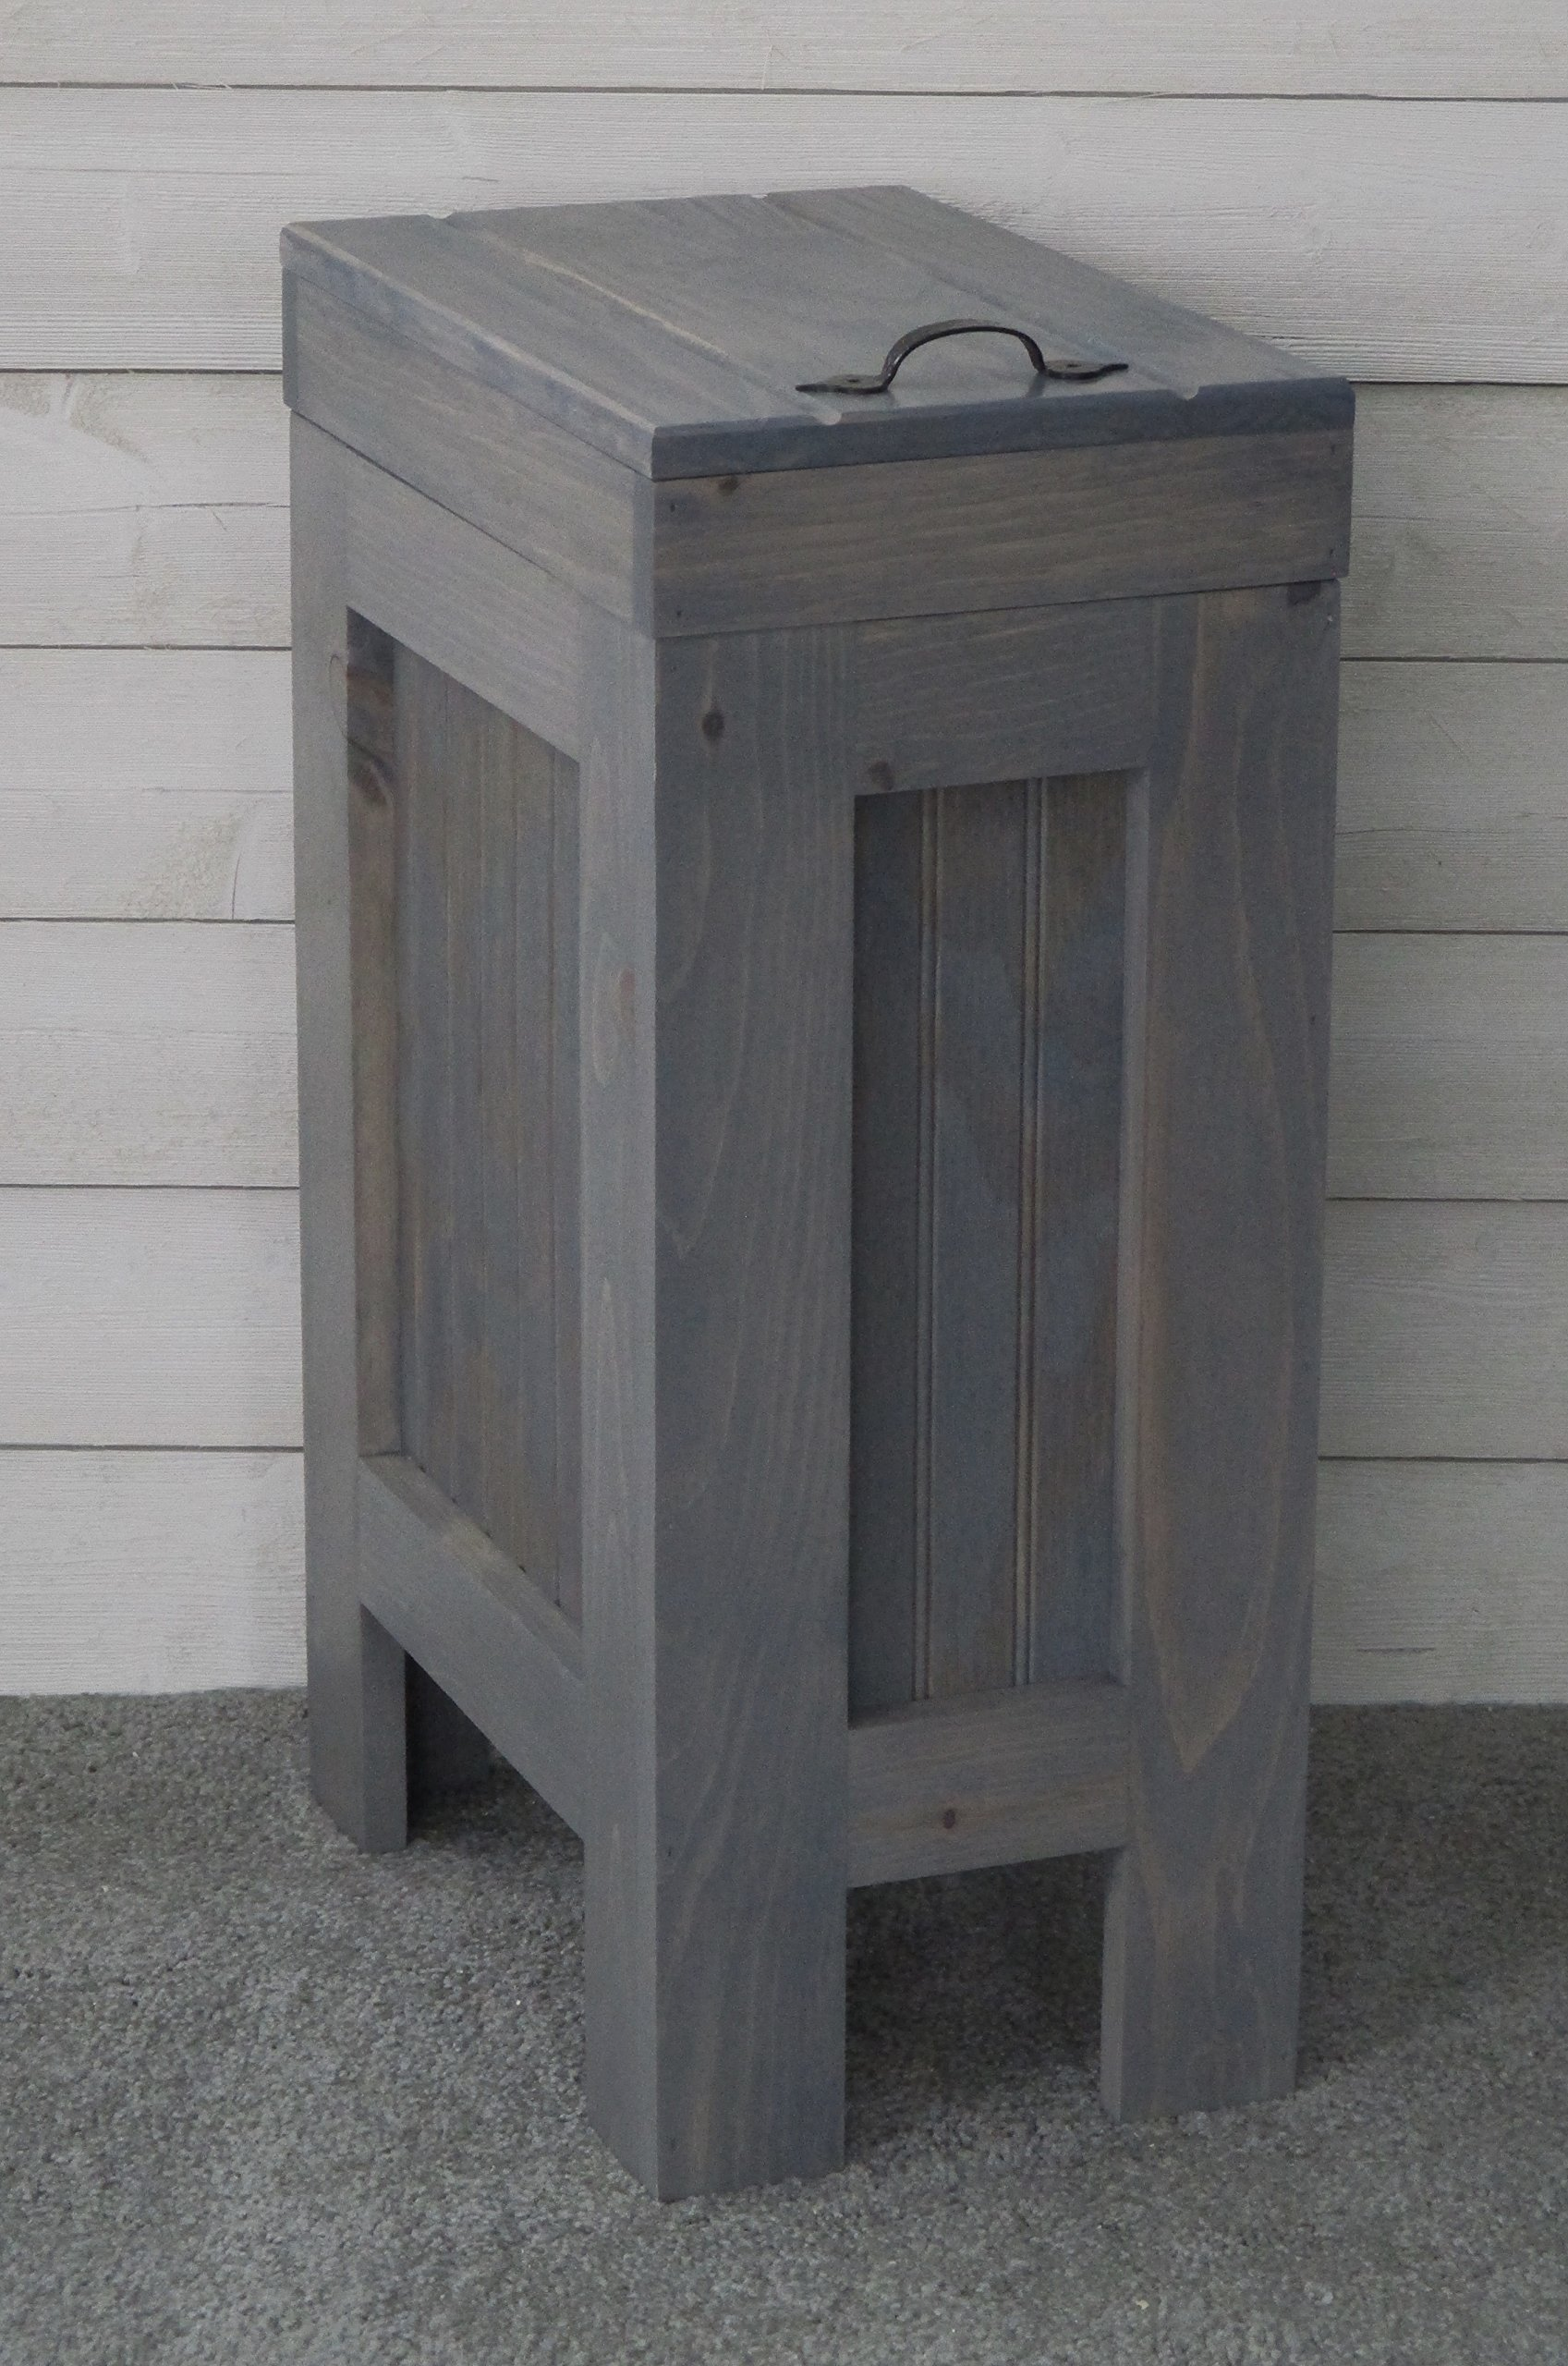 Rustic Wood Trash Bin, Kitchen Trash Can, Wood Trash Can,Trash Cabinet, Dog food storage, 13 Gallon , Recycle Bin, Gray Stain - Metal Handle - Handmade in USA By Chris- BuffaloWoodshop